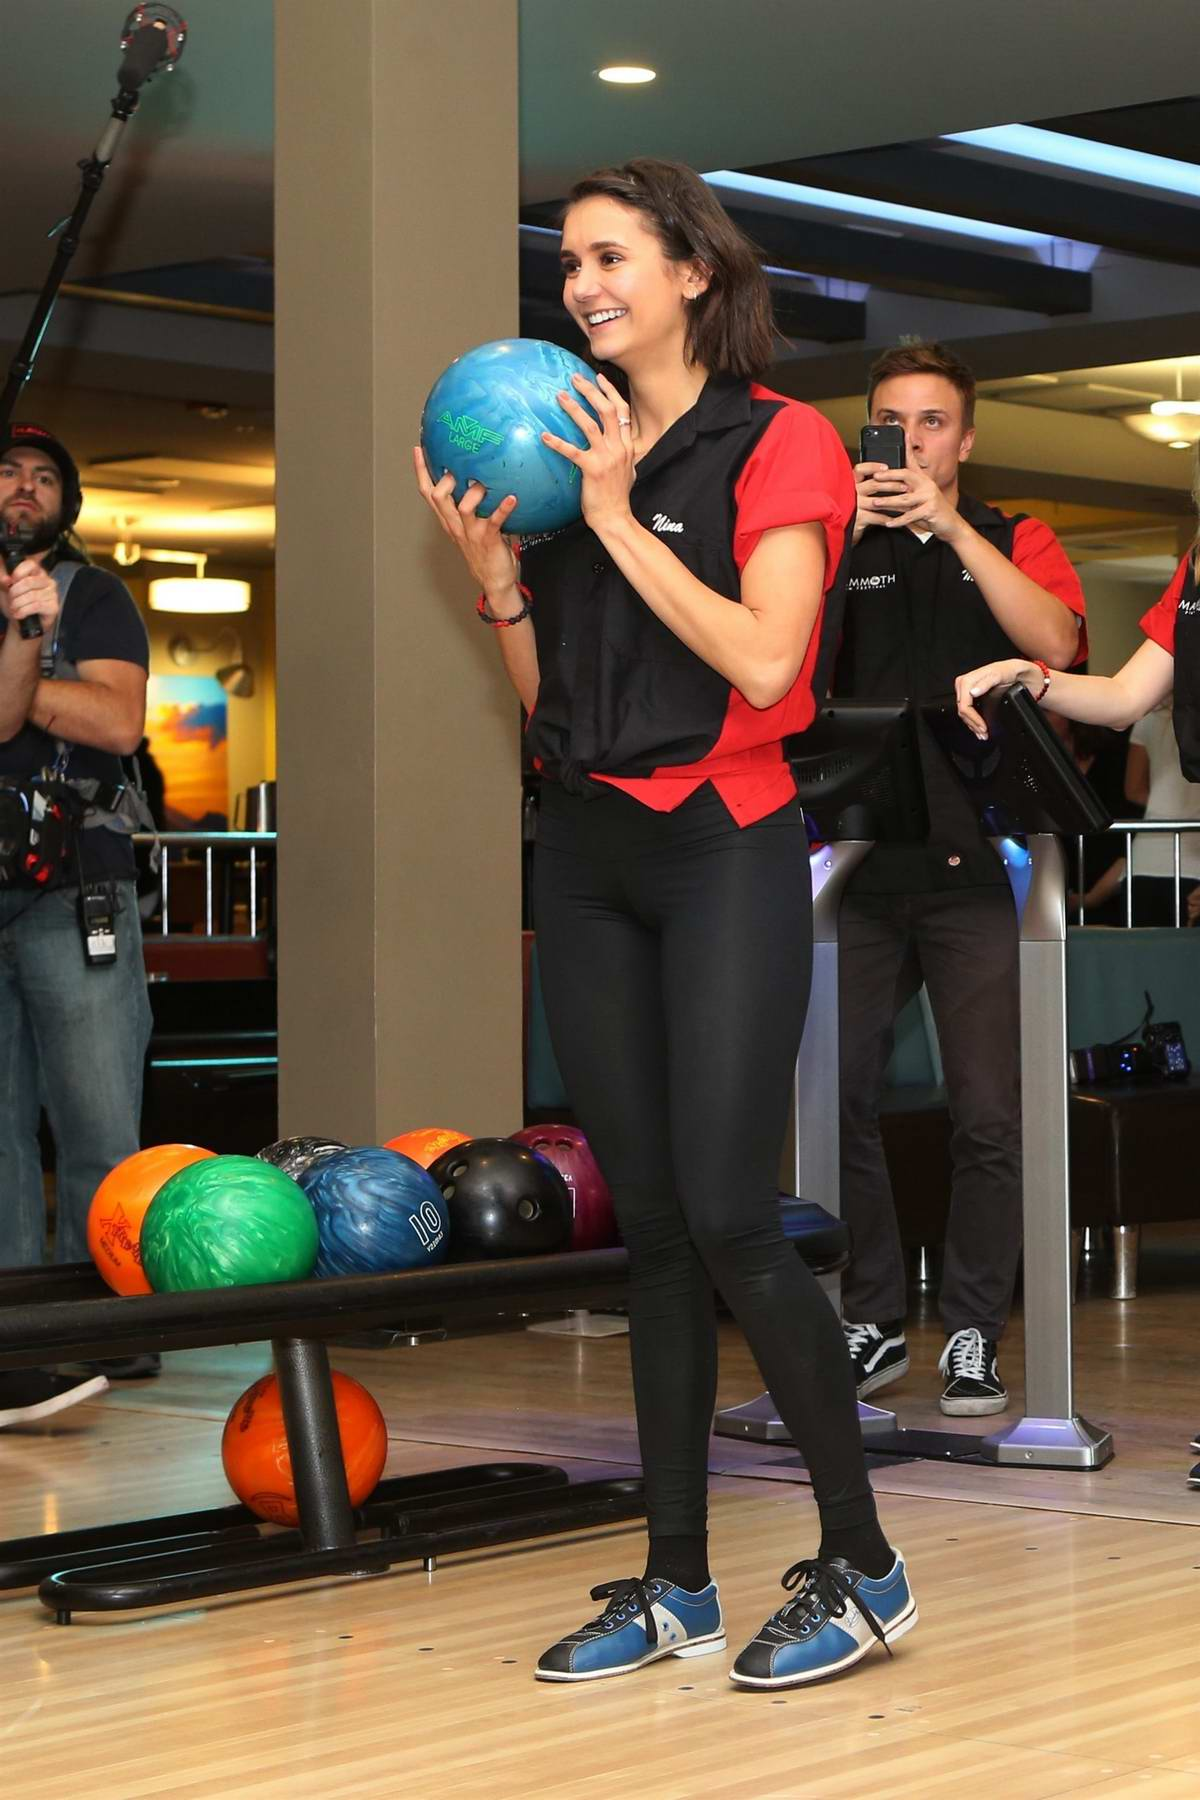 Nina Dobrev at First Annual Mammoth Film Festival Bowling Tournament in Mammoth Lakes, California